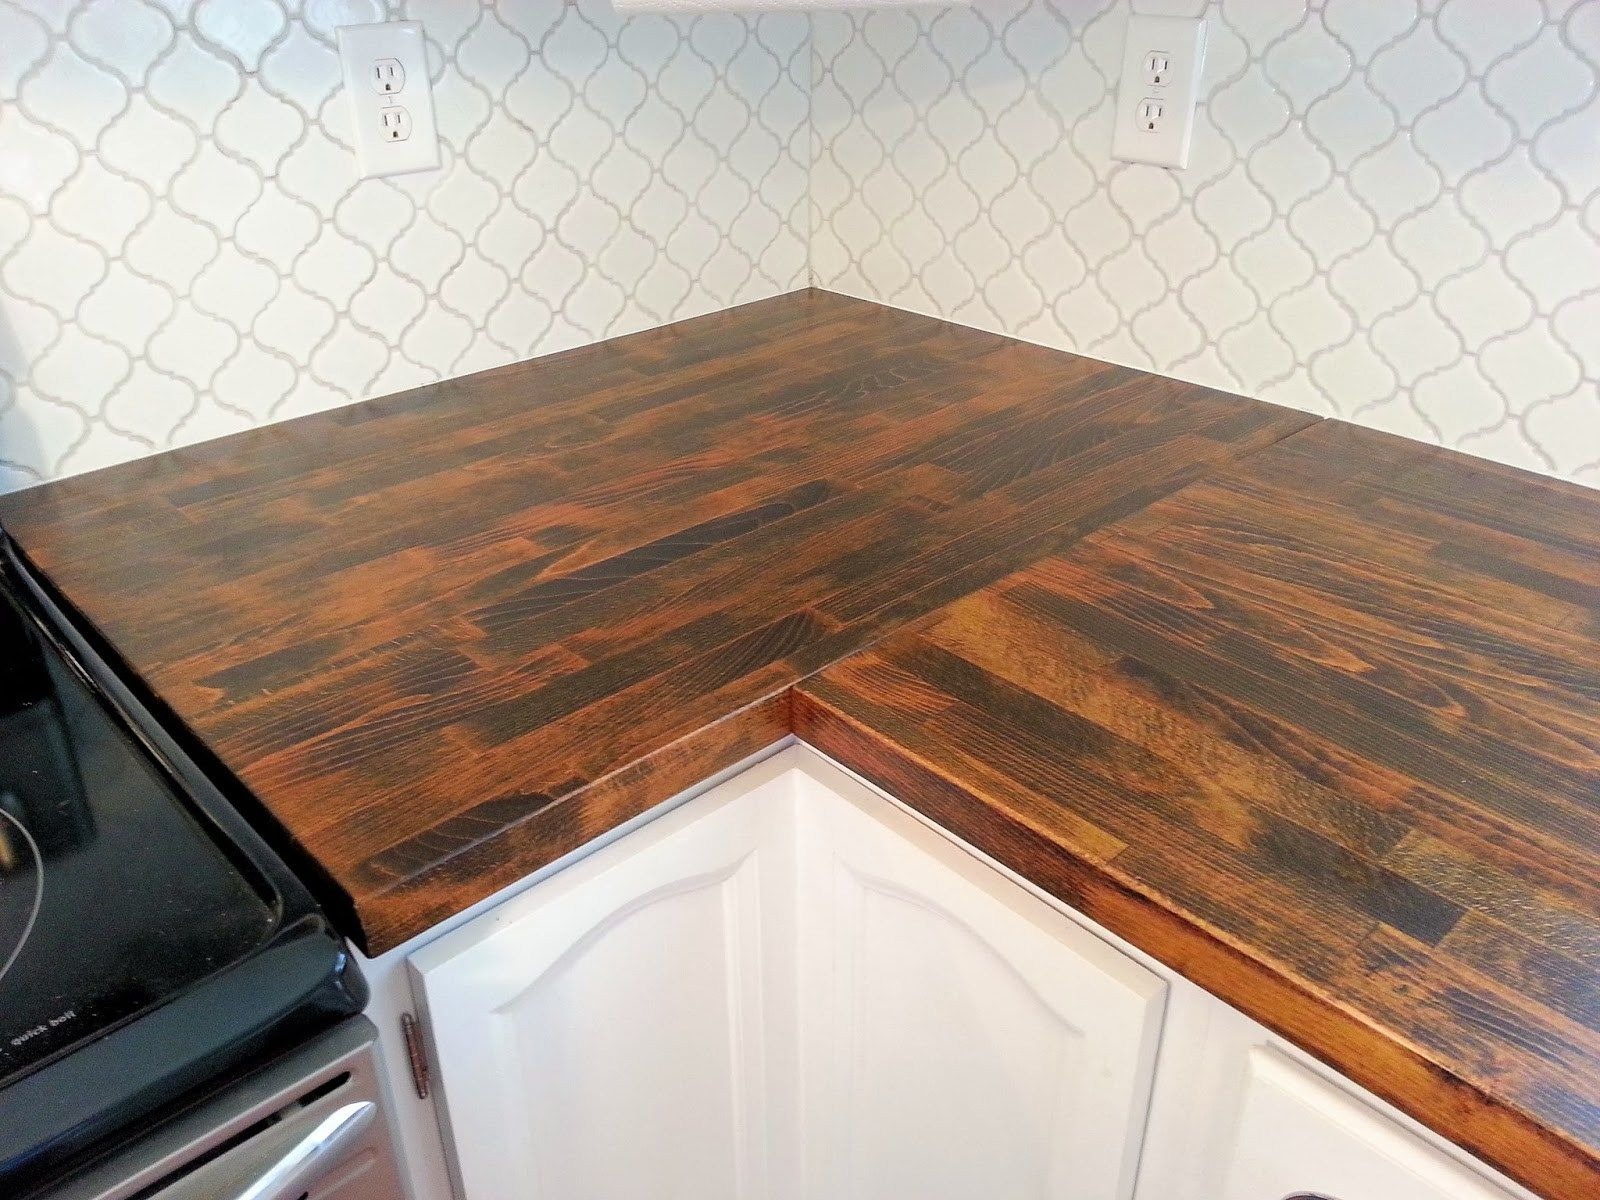 wood countertops diy wood kitchen countertops diy wooden ...